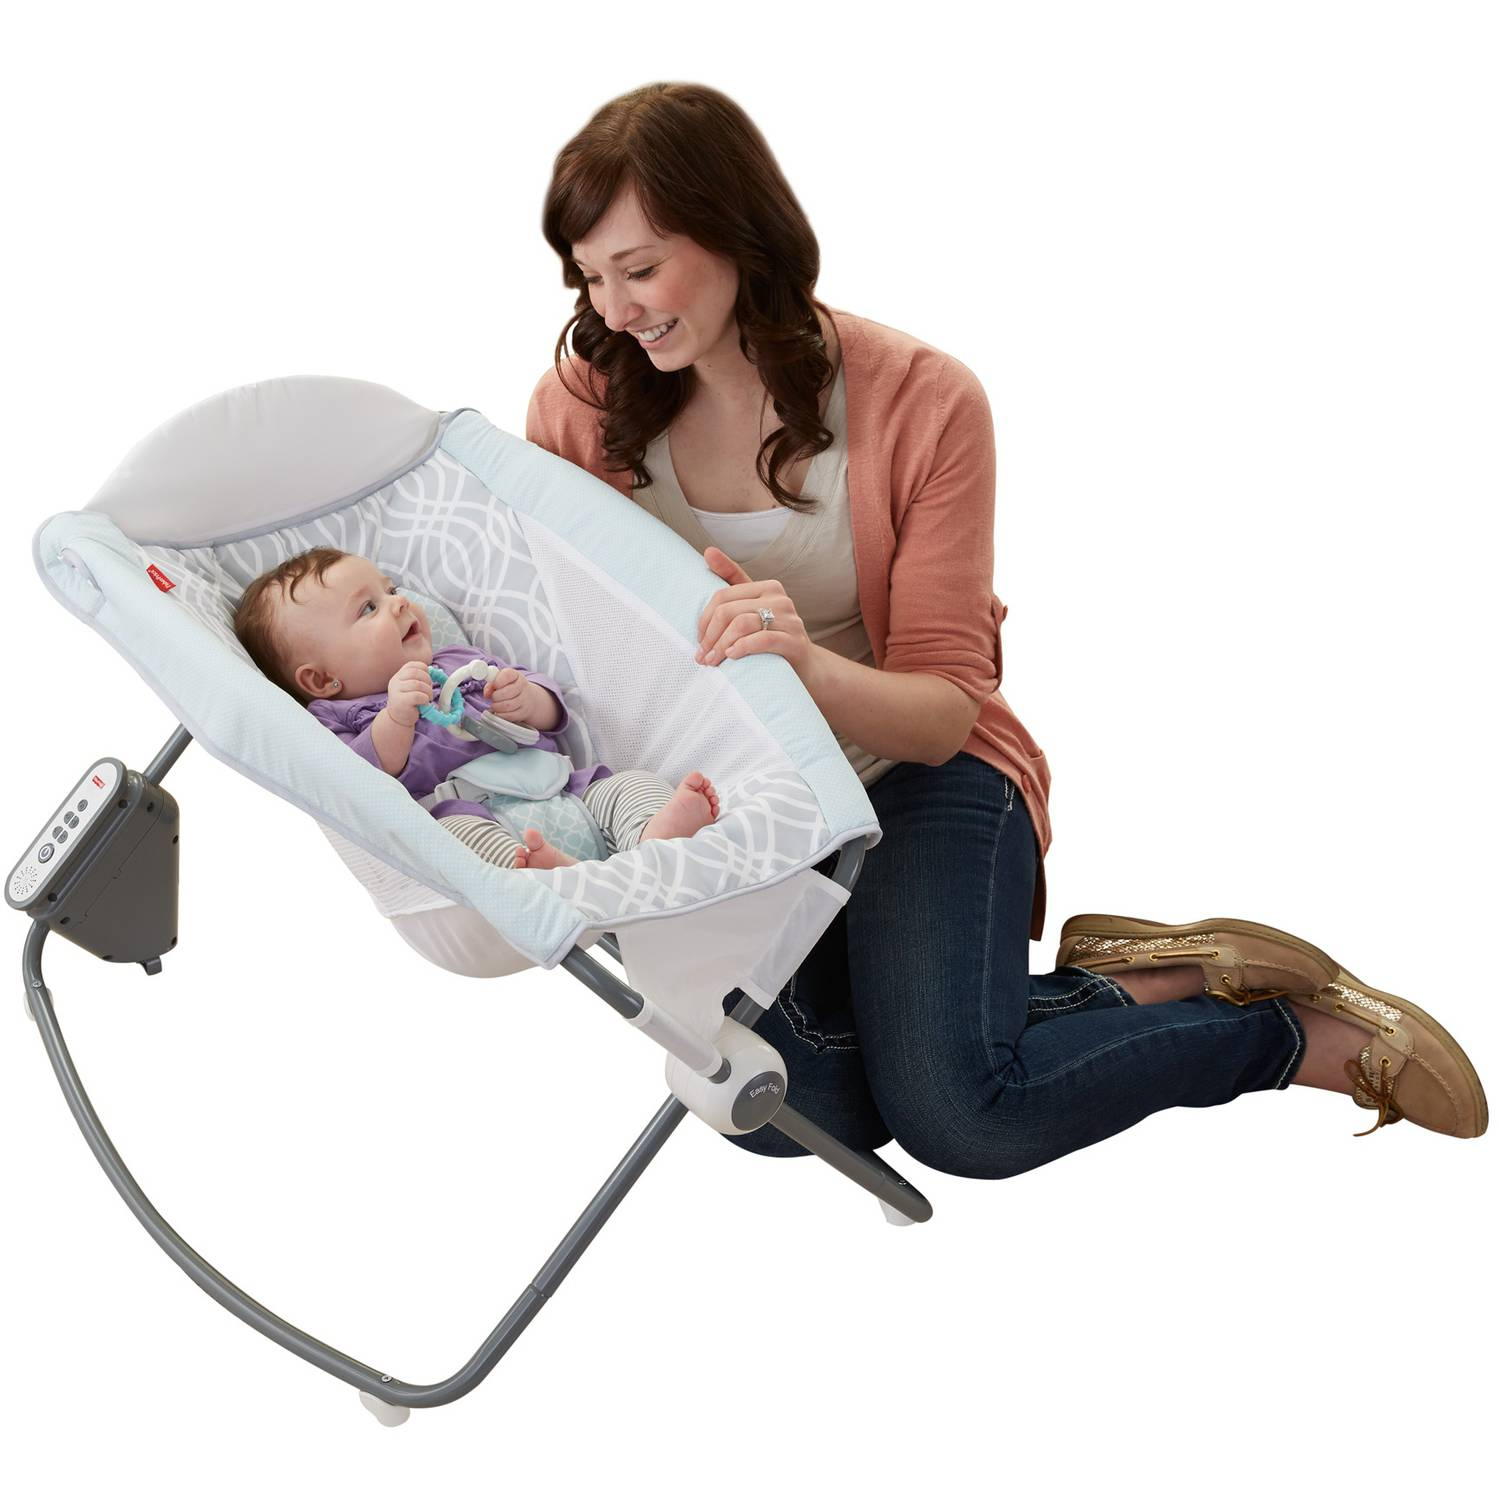 Fisher-Price Newborn Auto Rock 'n Play Sleeper Waterscape